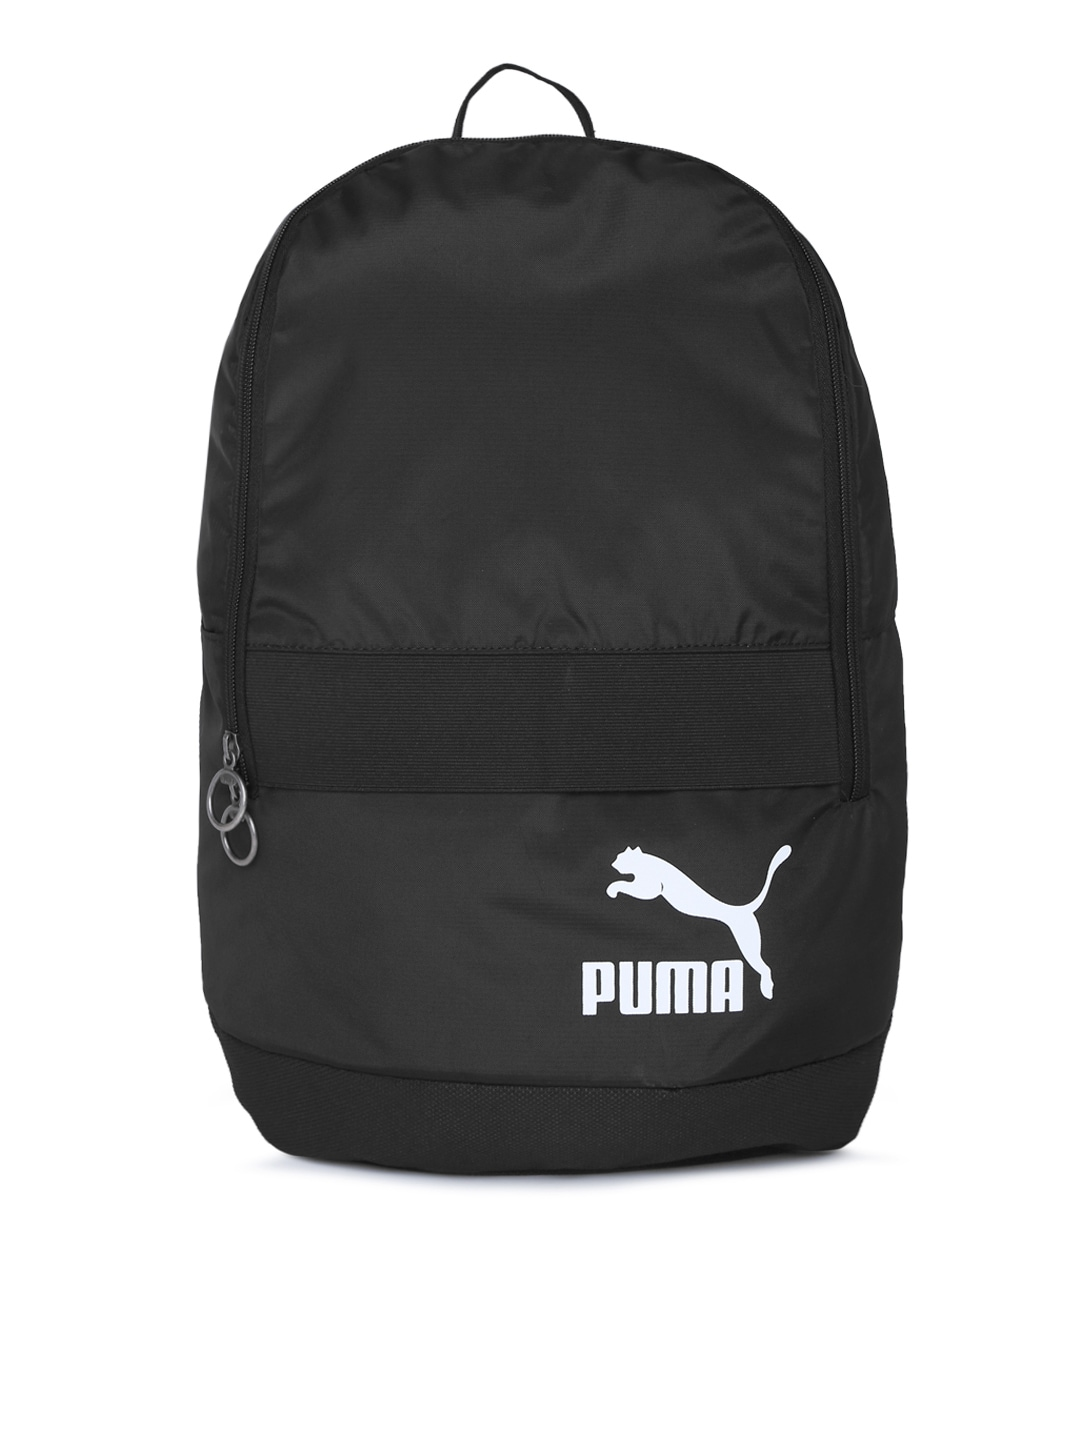 Bags Puma Backpacks - Buy Bags Puma Backpacks online in India a4400b538407c